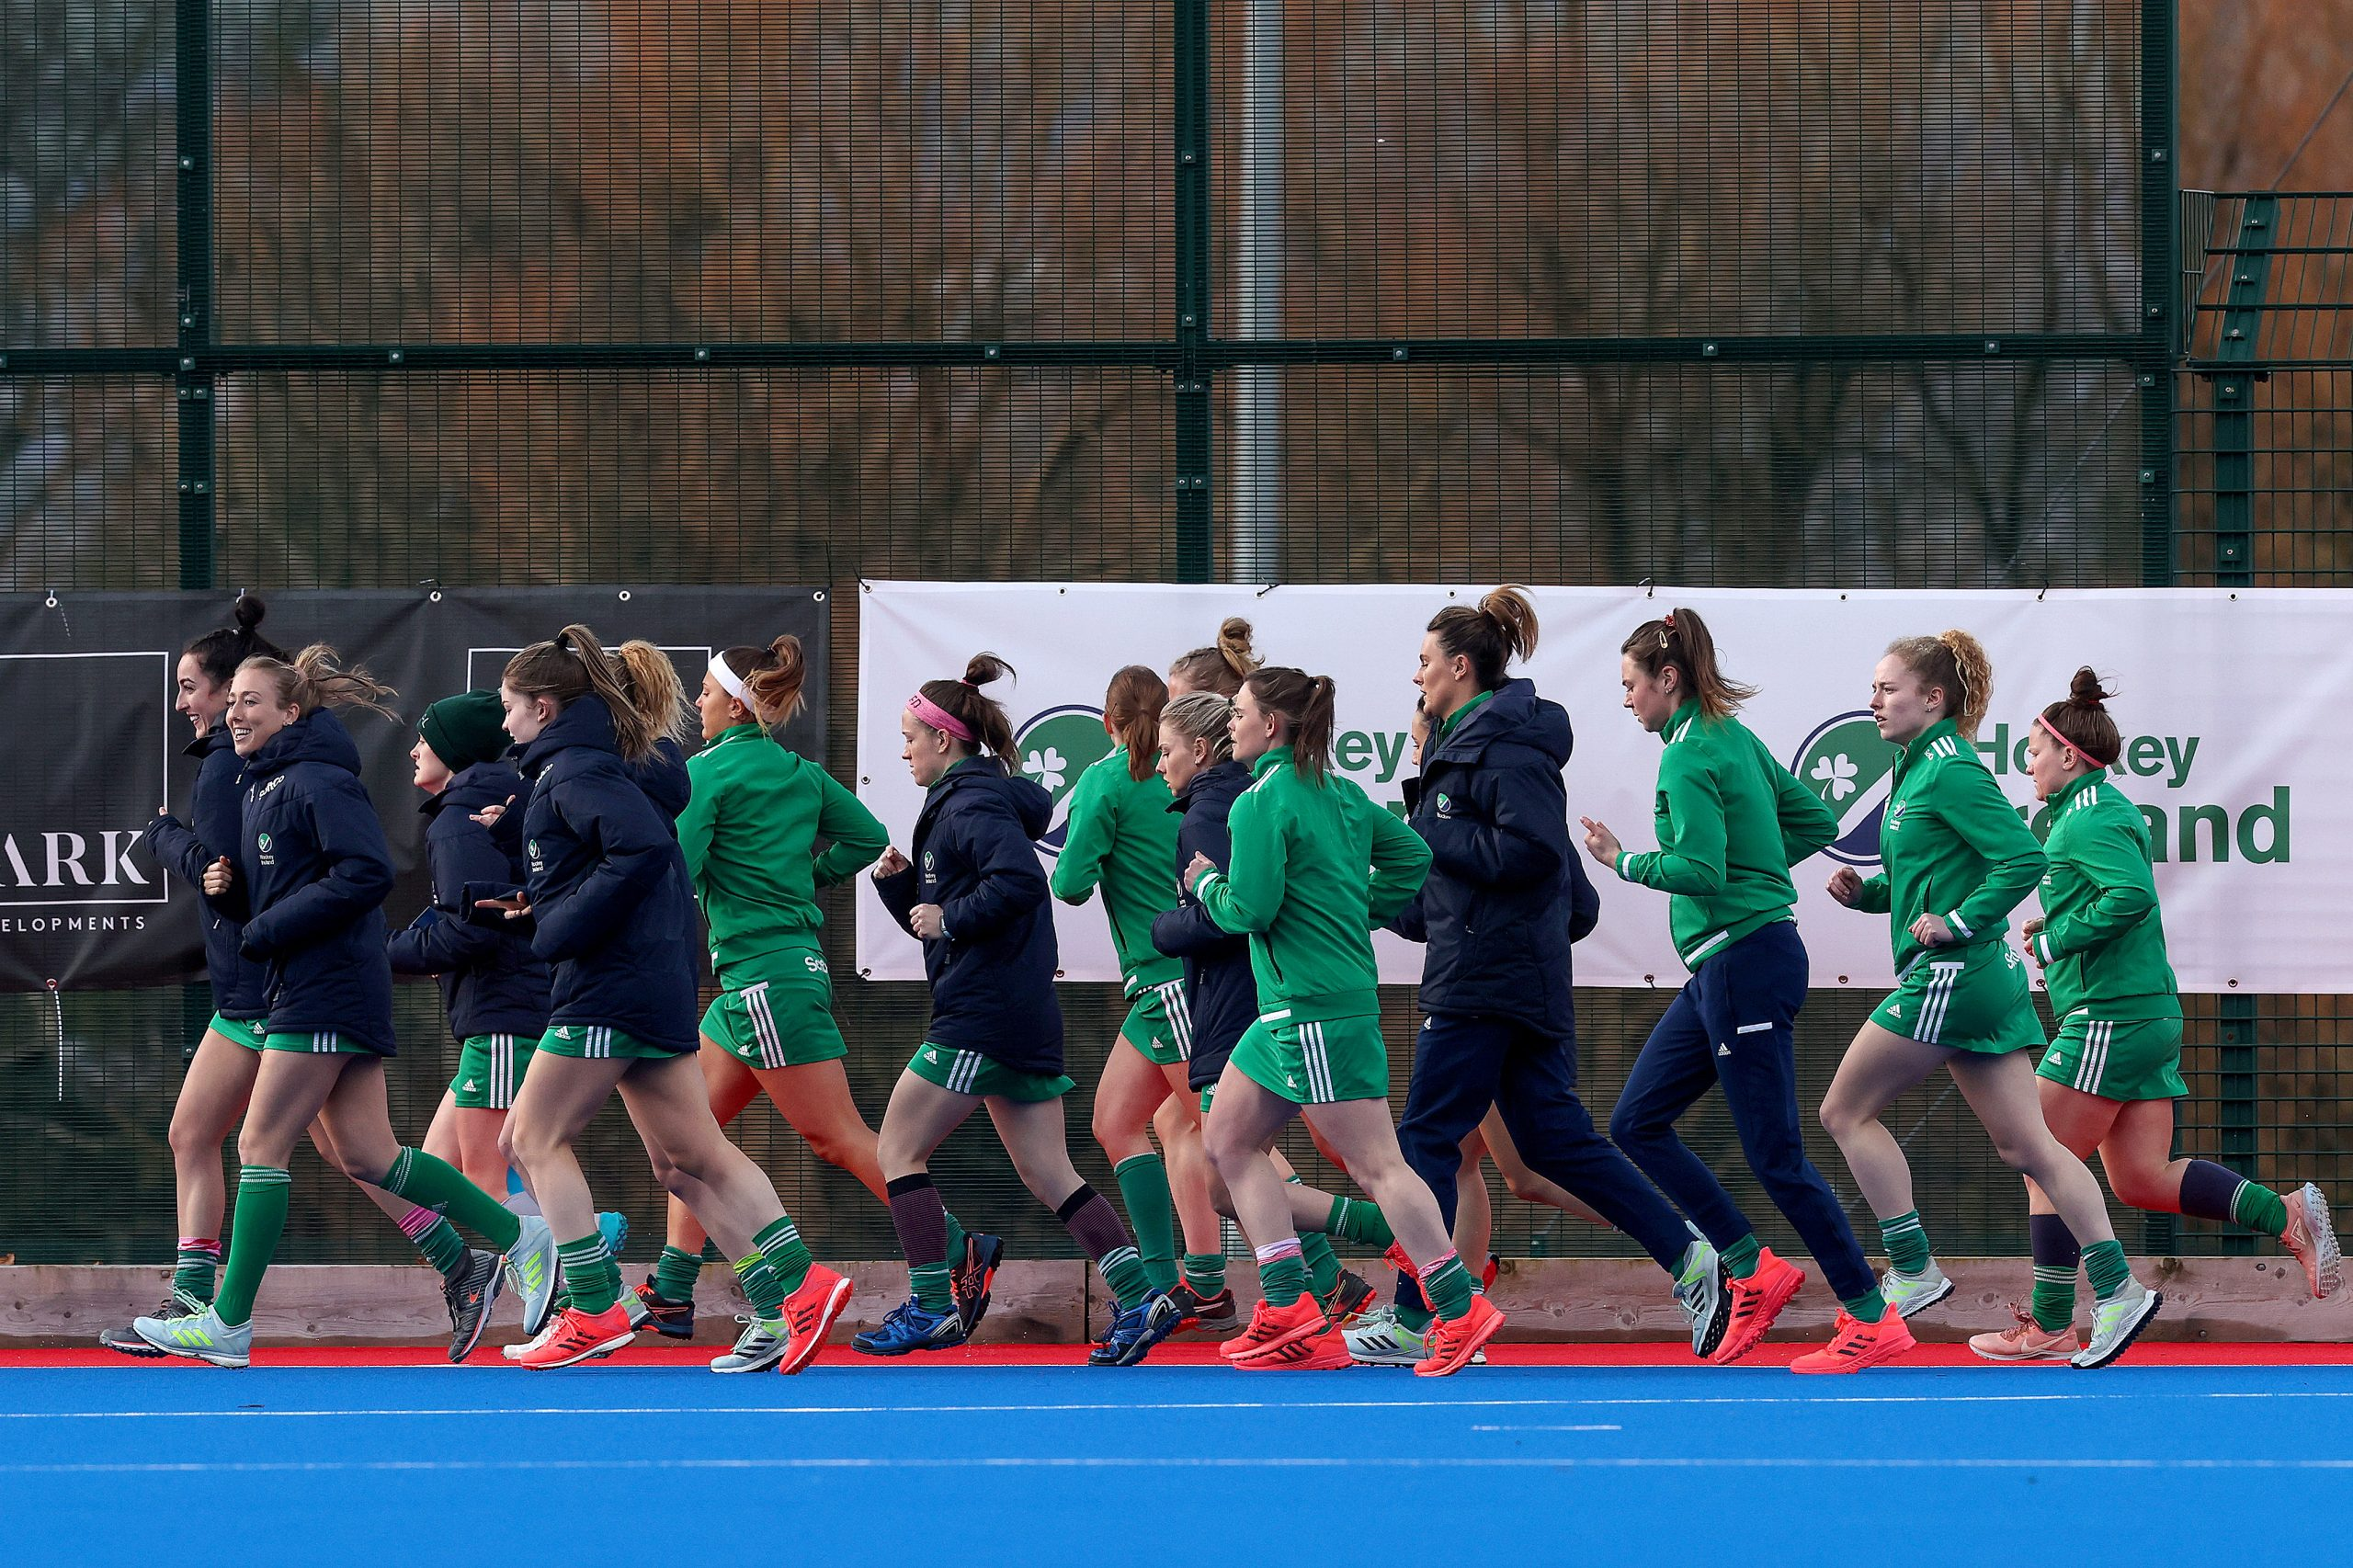 Inpho. Green Army Warm Up Ahead of GB Clash at SoftCo Series 2021 scaled